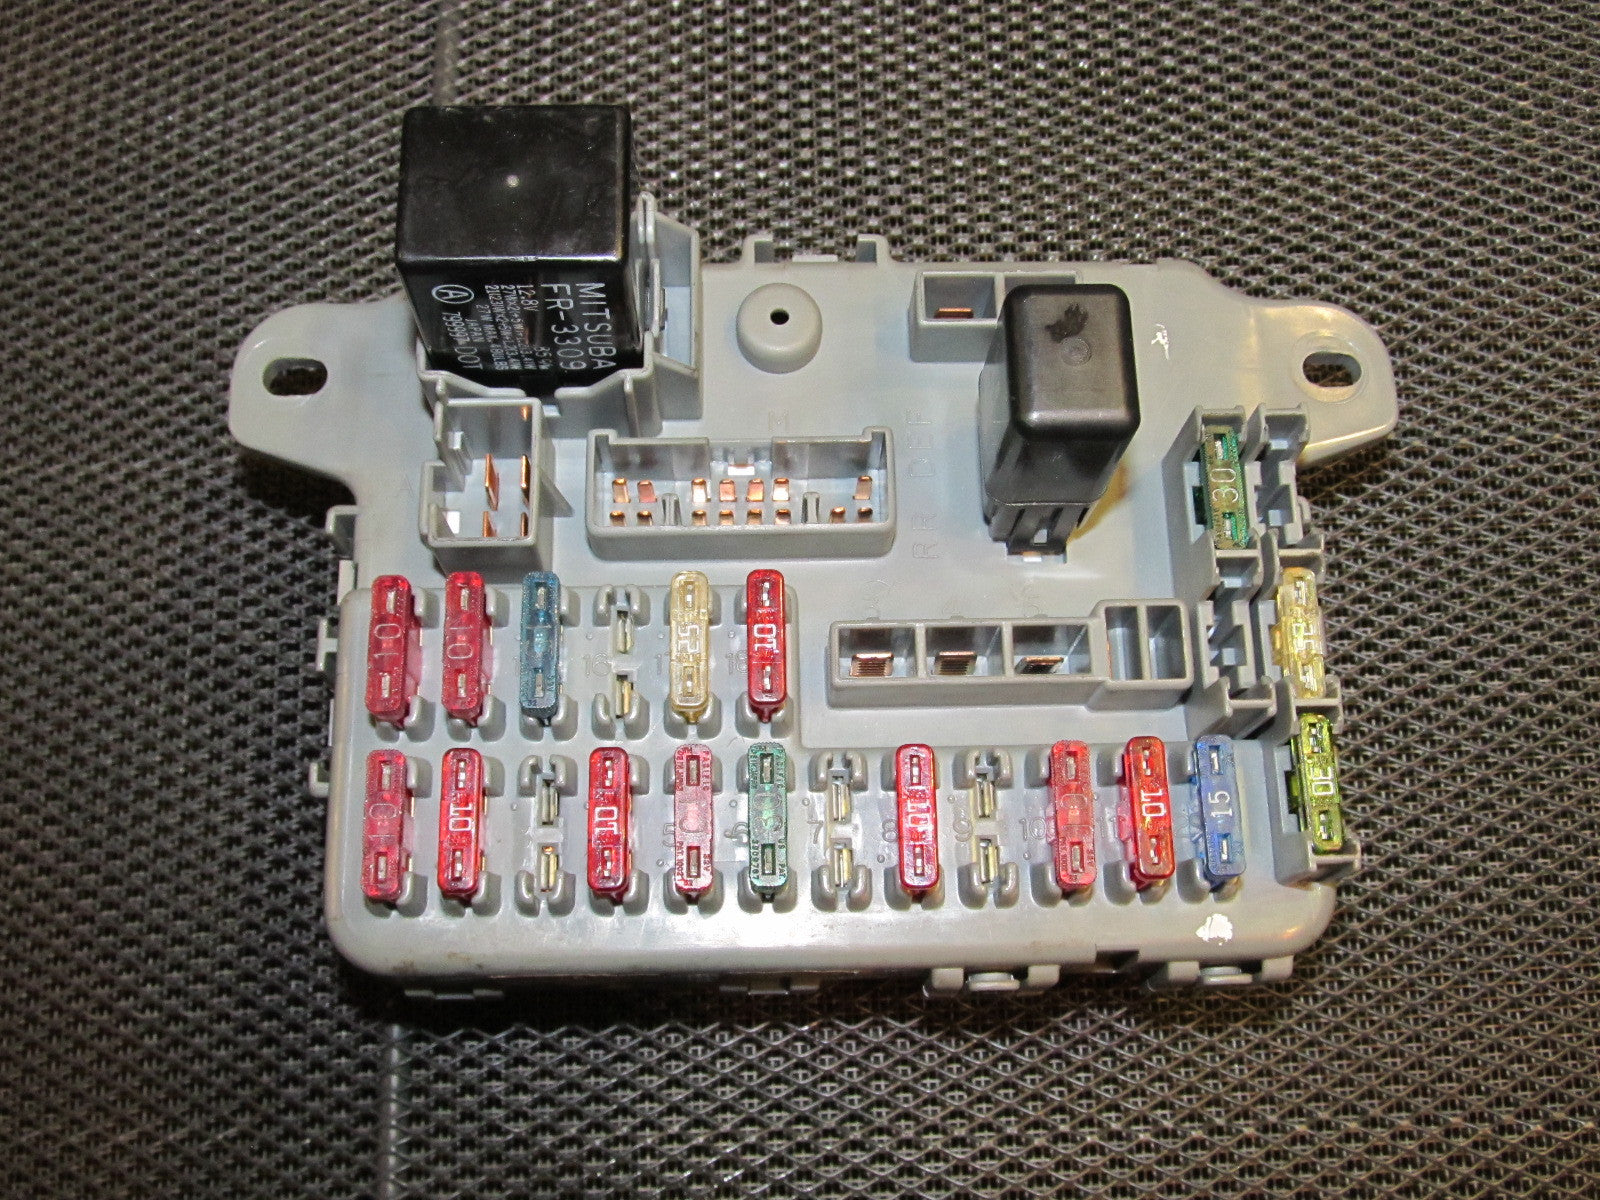 IMG_1741?v=1442280626 88 89 honda crx oem d15b2 interior fuse box autopartone com 1991 Civic at readyjetset.co